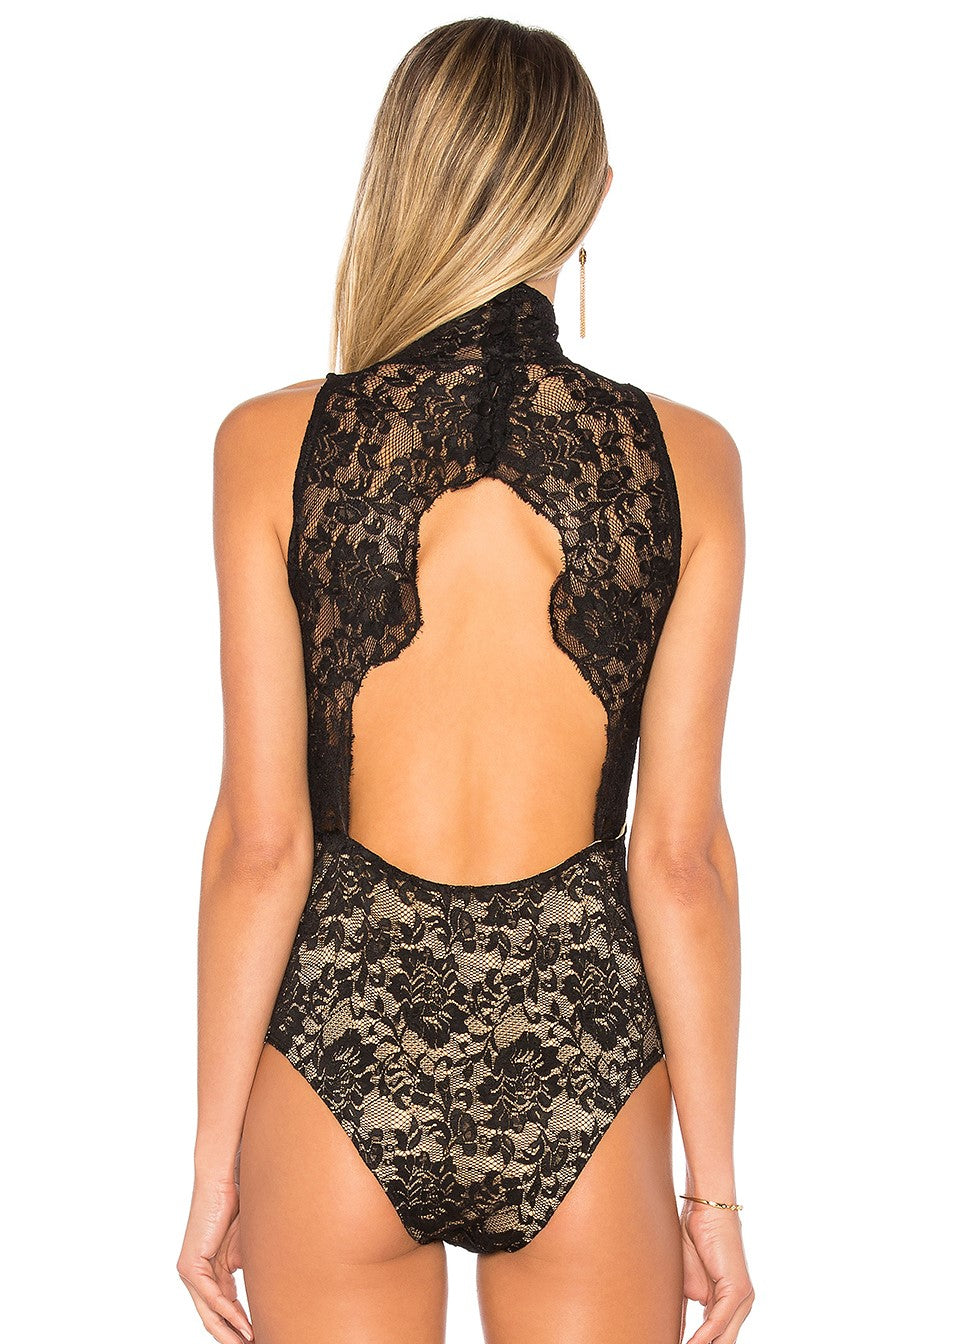 Nightcap - Victorian Lace Bodysuit One Piece - Black Nude XS